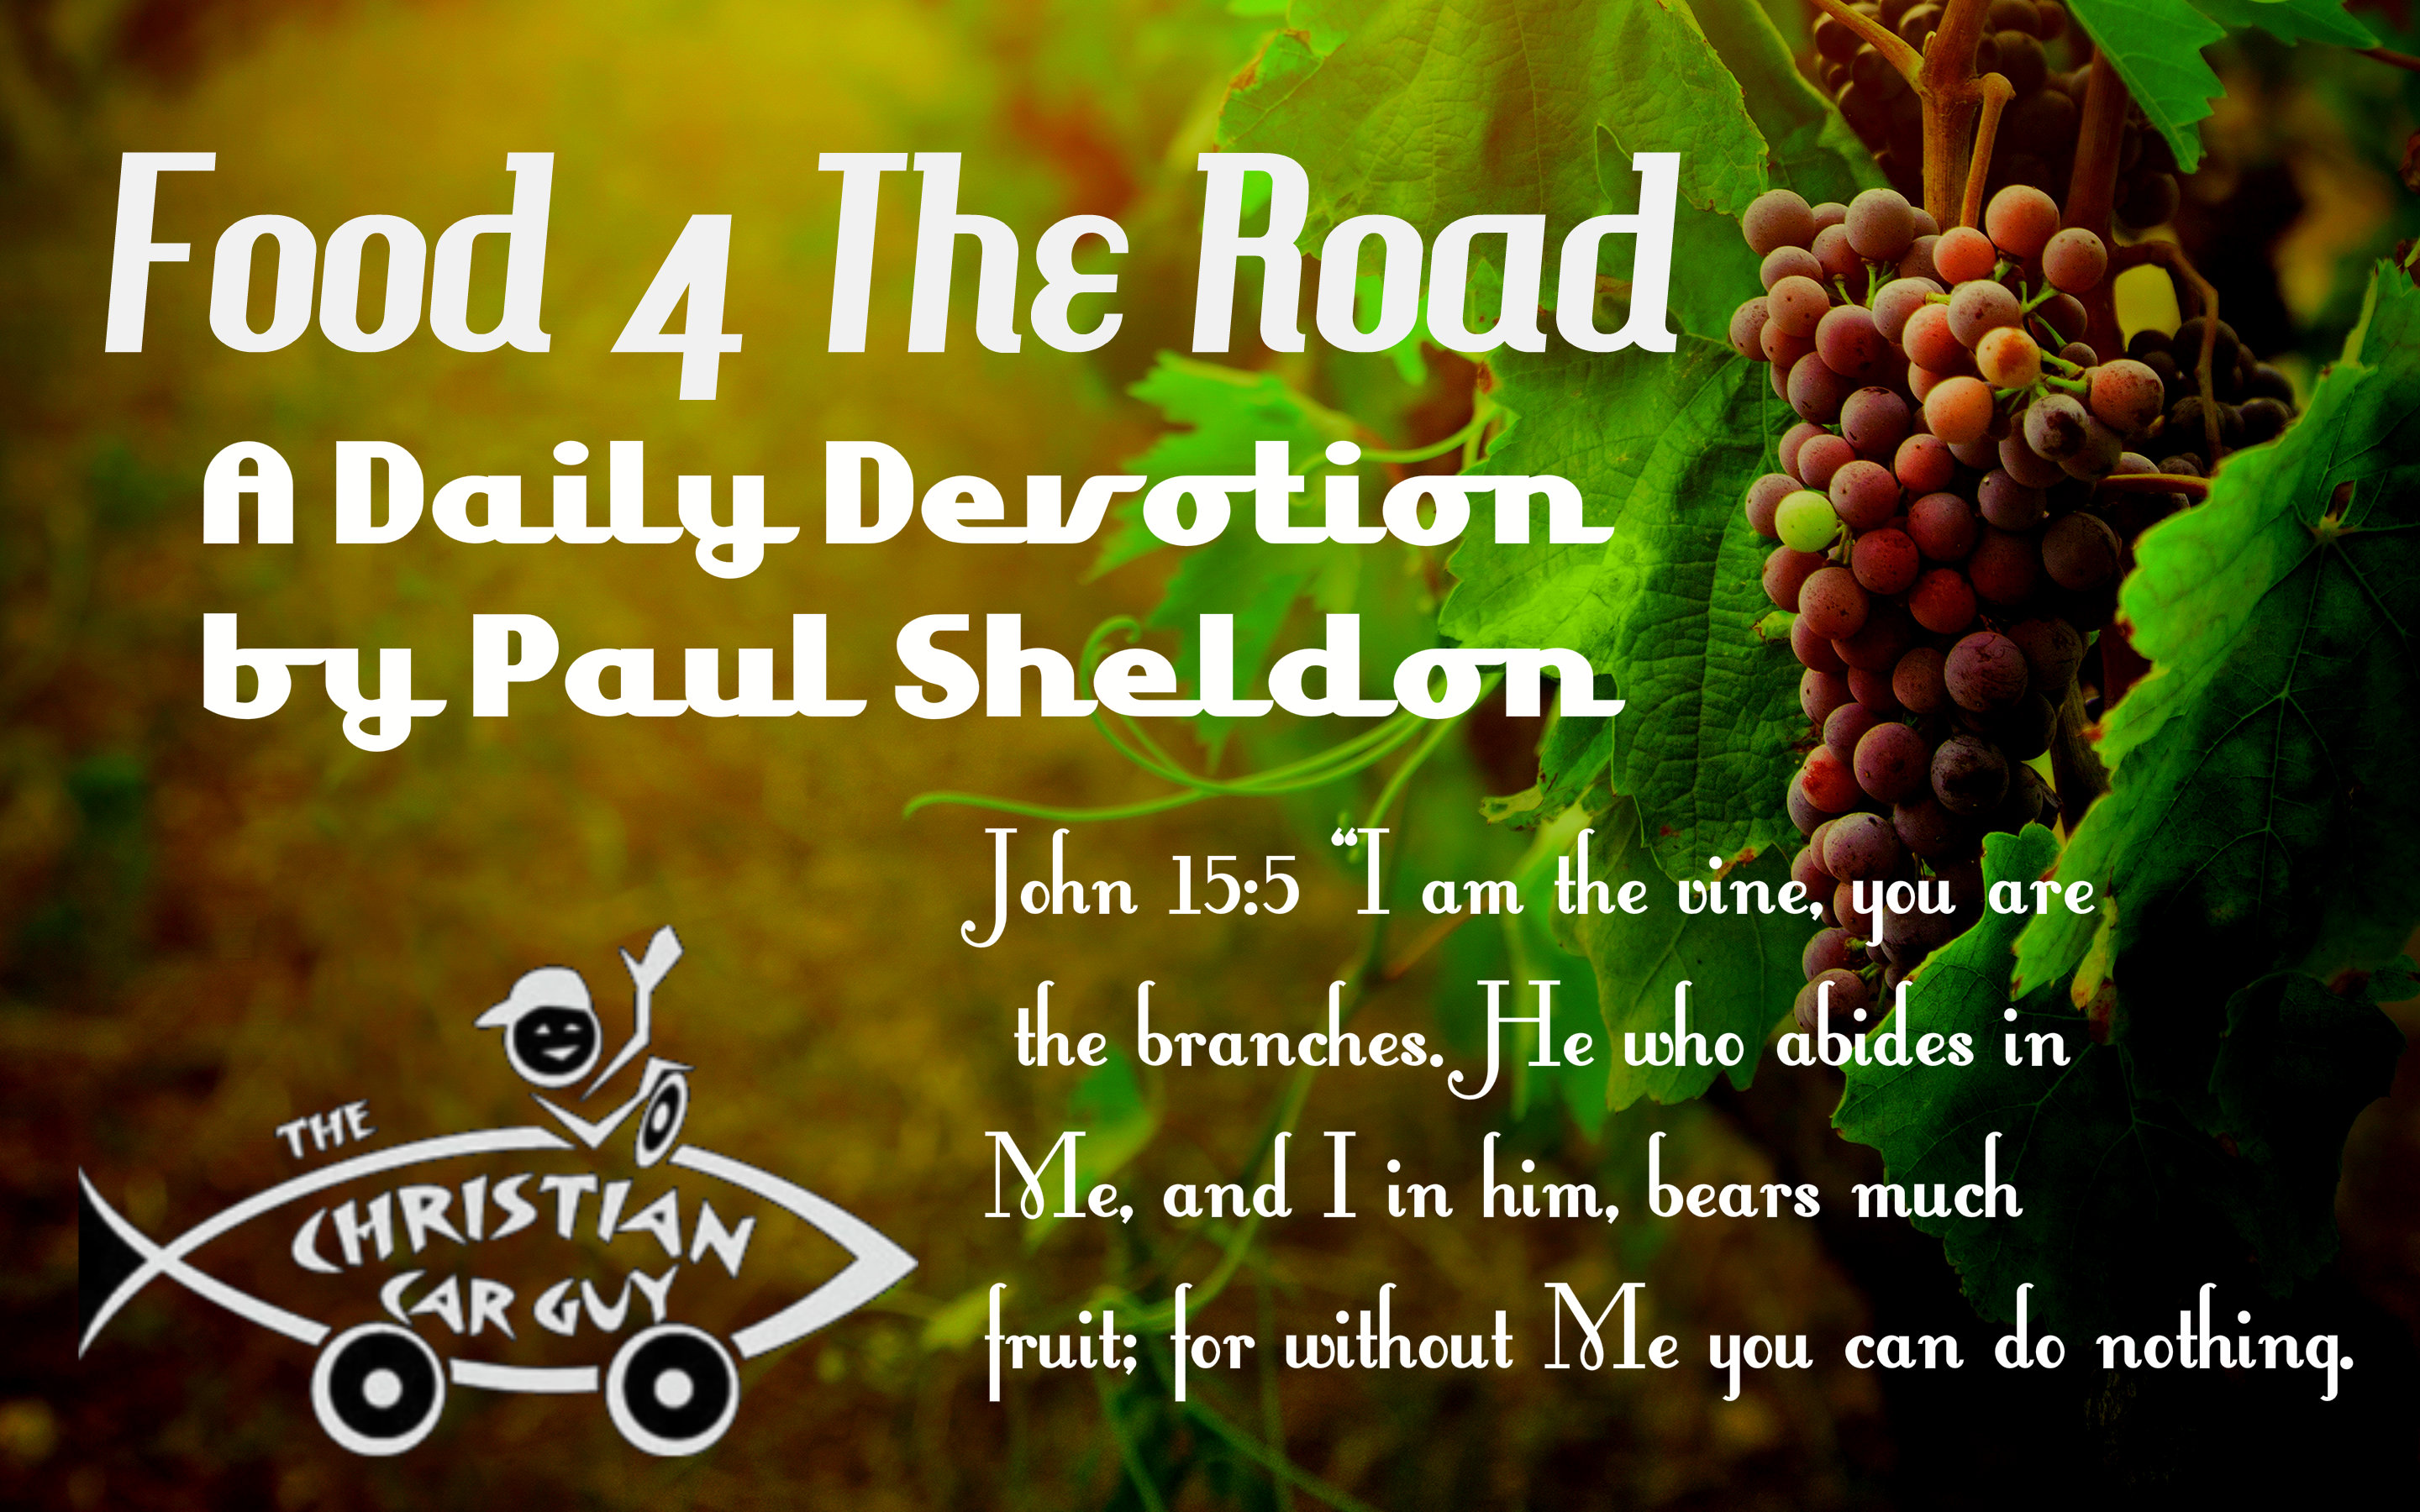 Food 4 The Road a daily devotion by Paul Sheldon